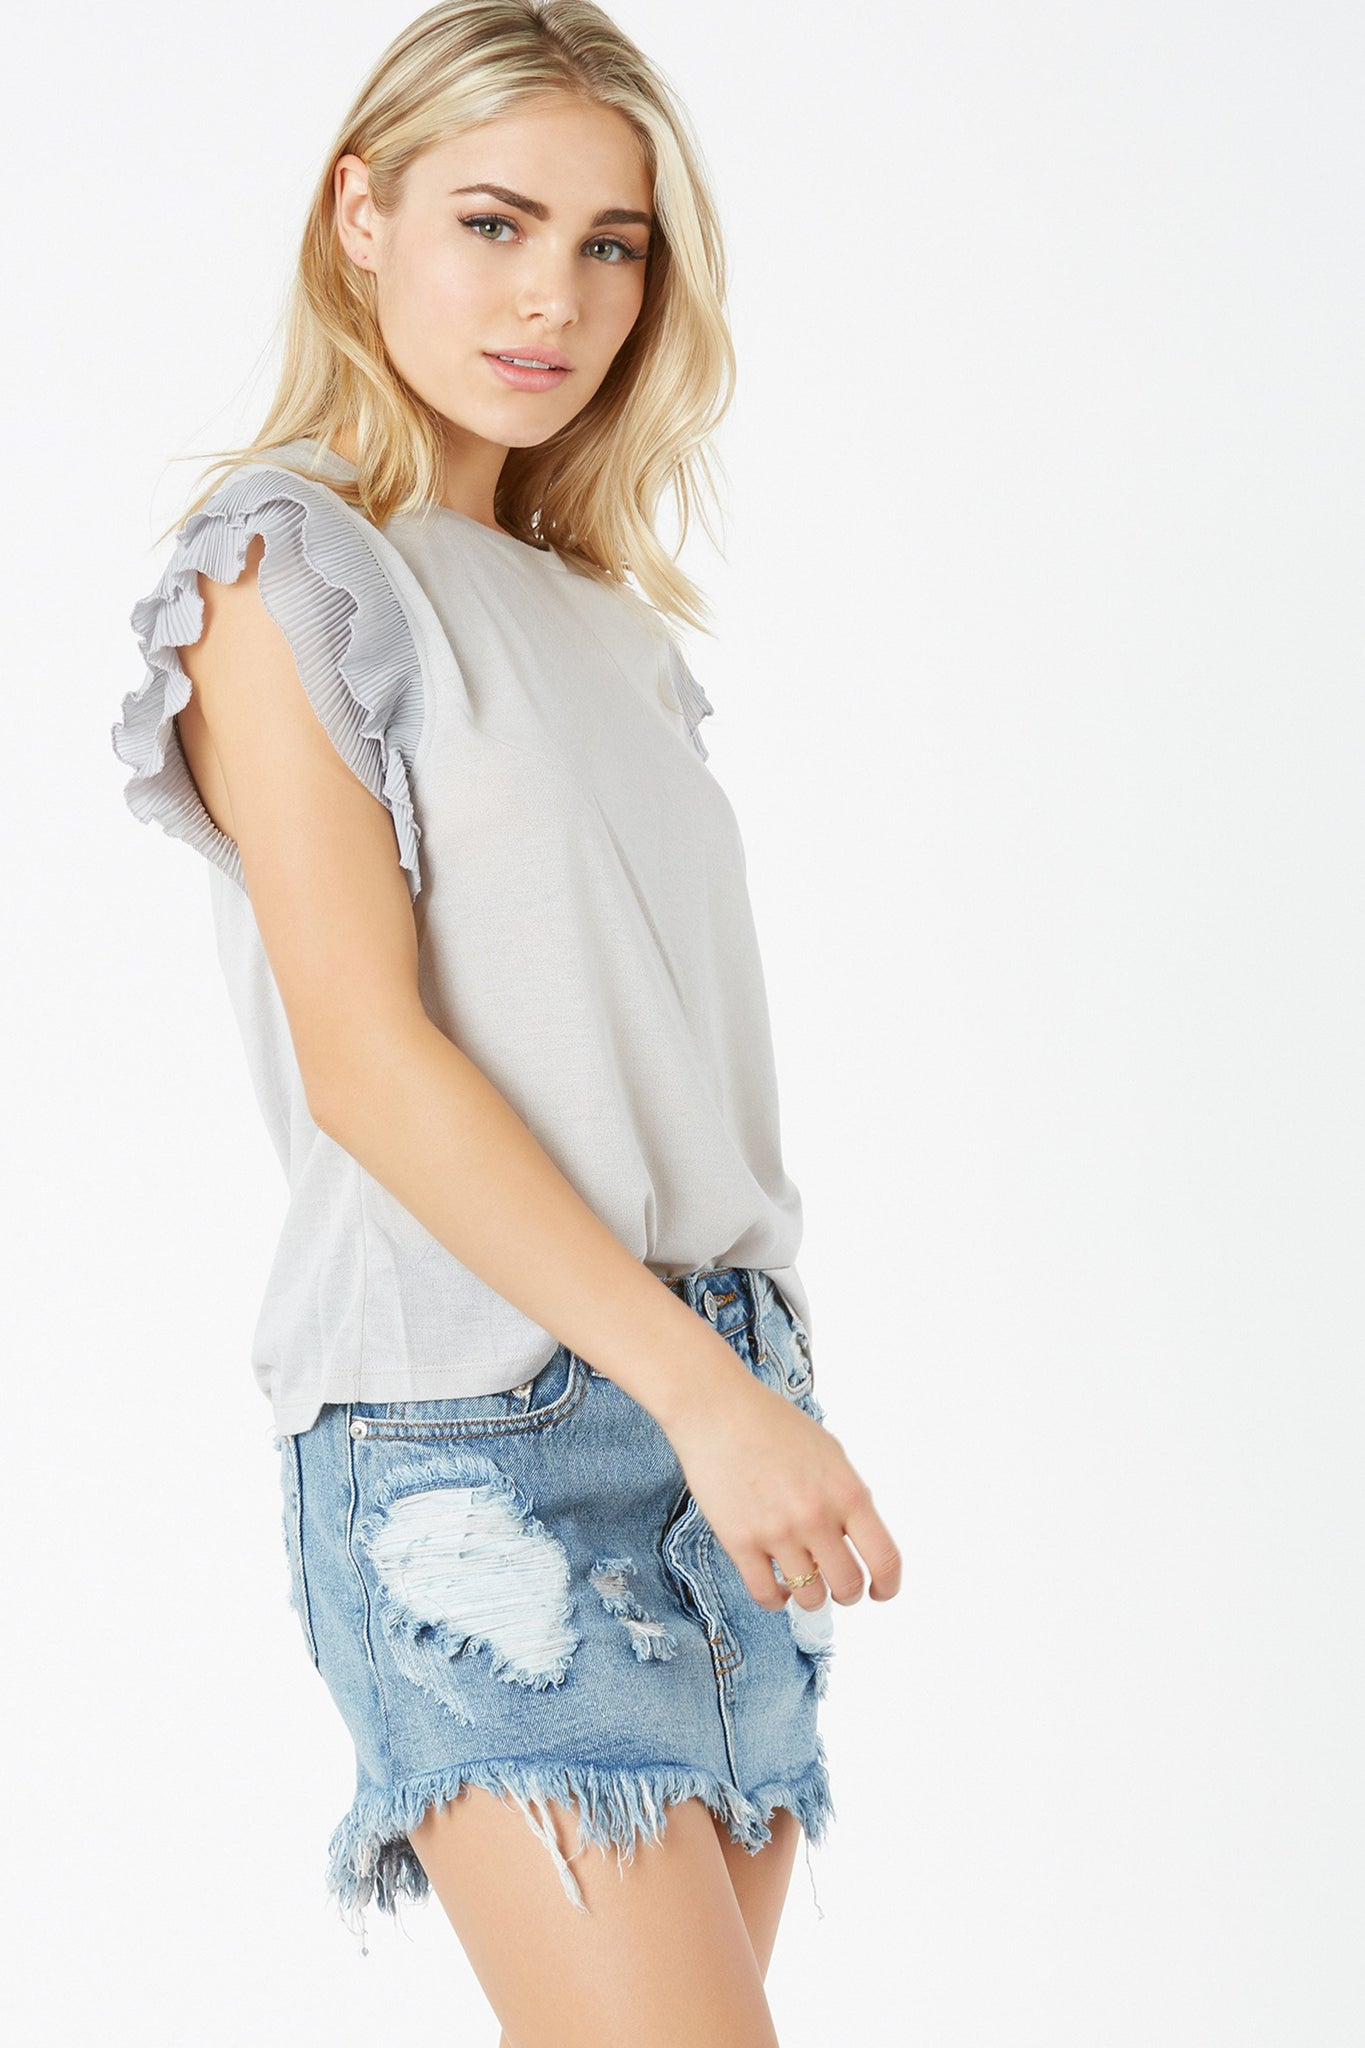 Chic crew neck top with relaxed fit. Lightweight material with tiered pleated sleeves for added detail.